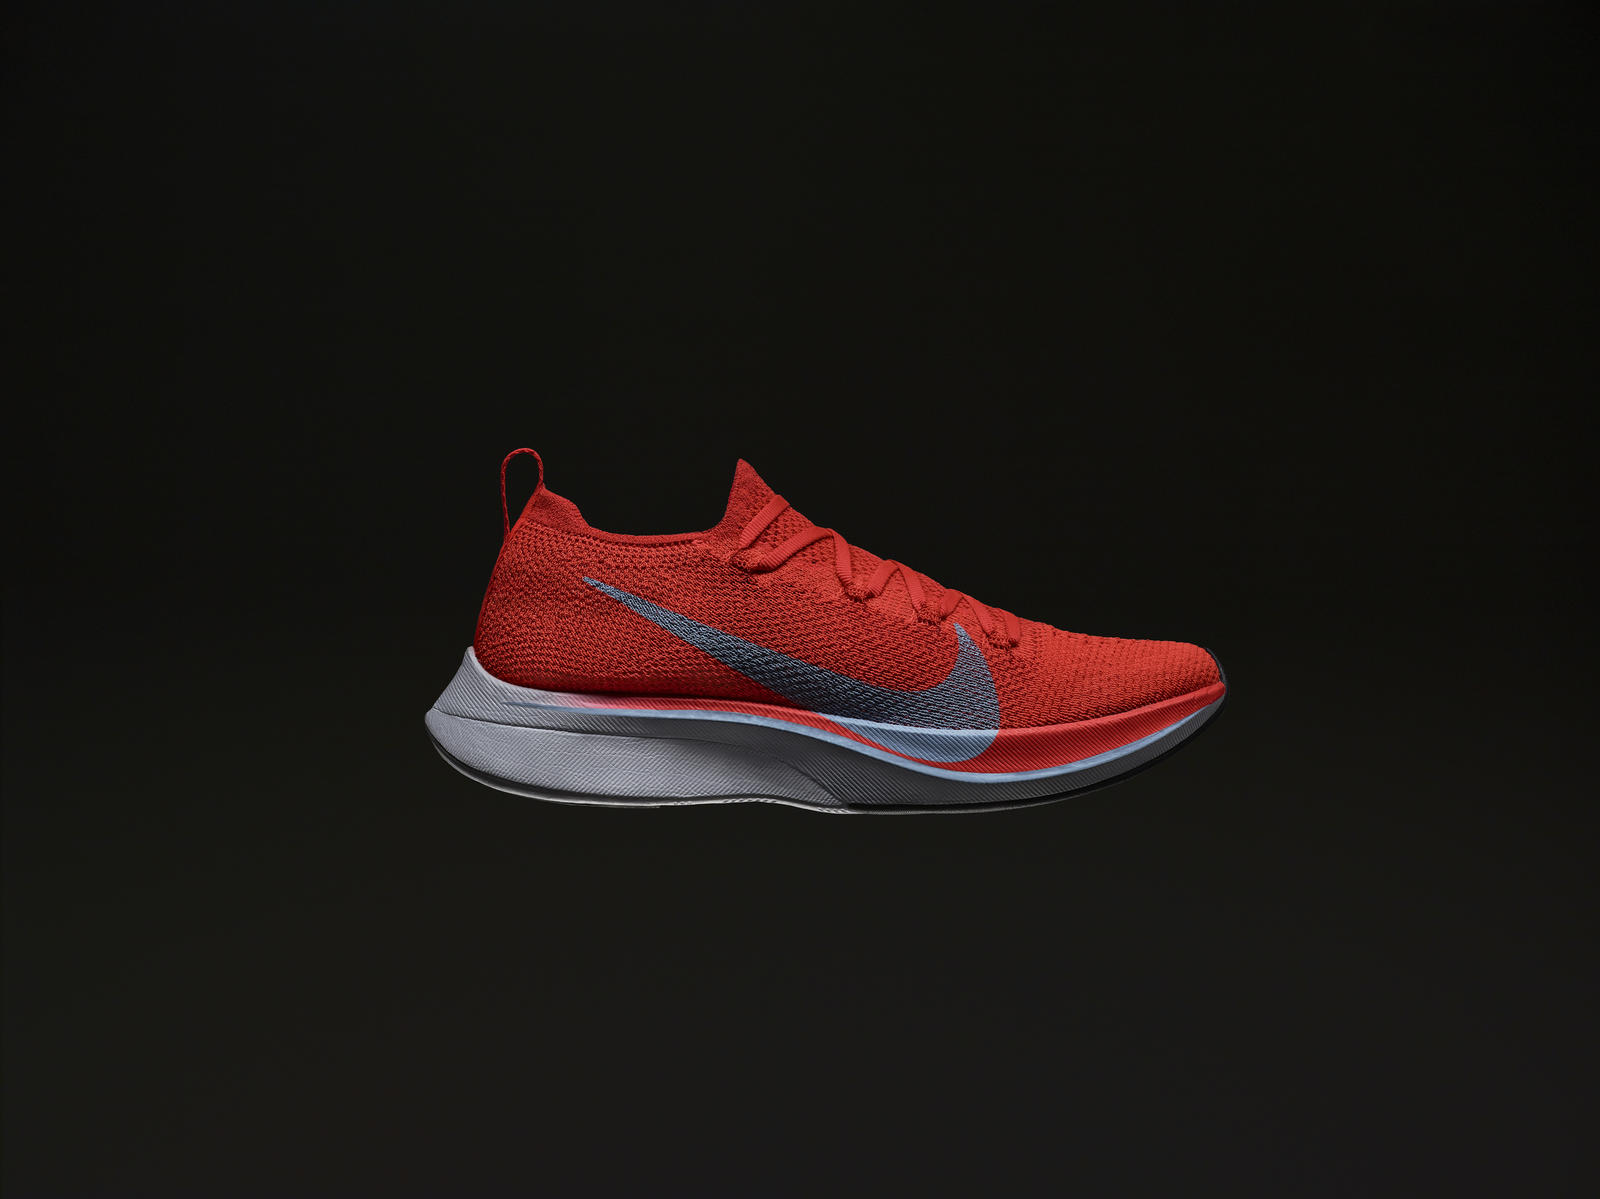 new arrival 72bba 6aae2 The Nike Zoom Vaporfly 4% Flyknit